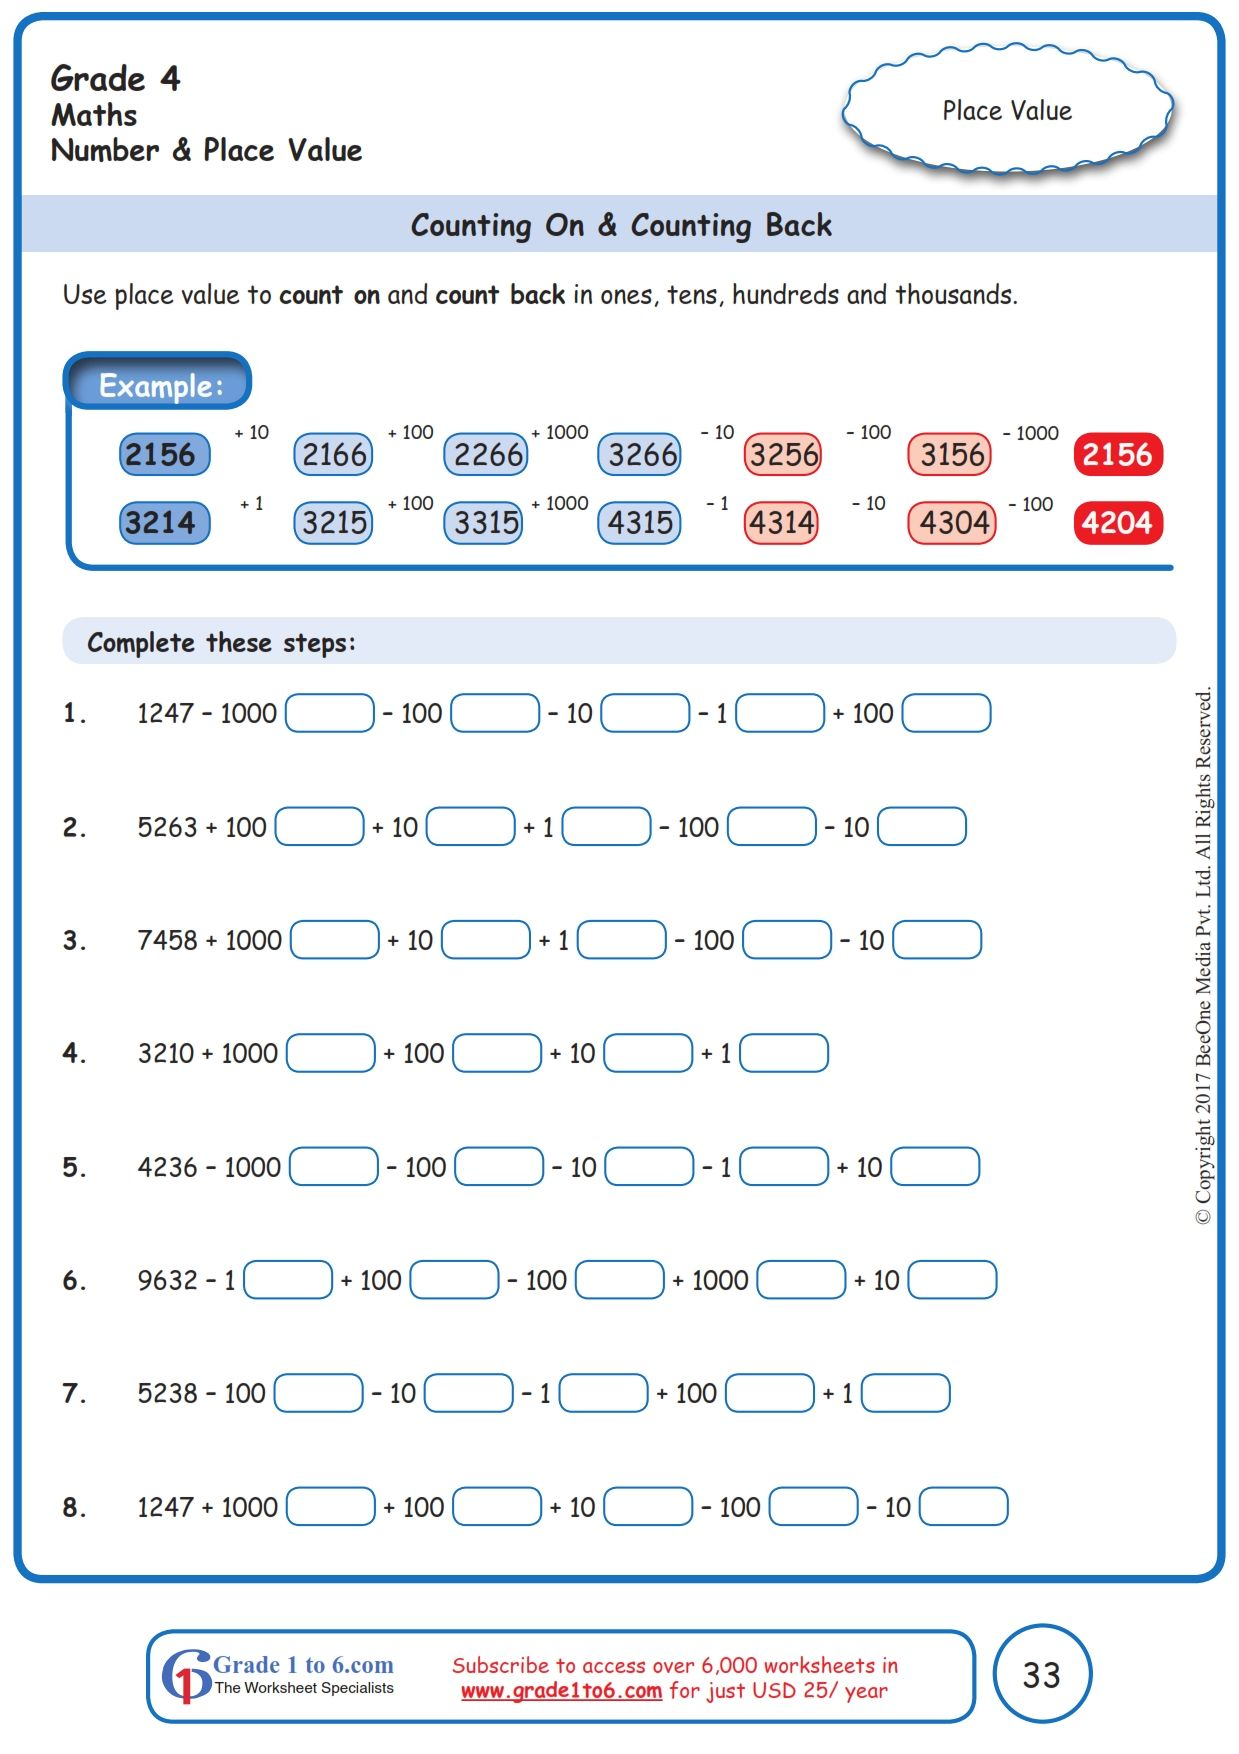 Worksheet Grade 4 Math Counting On & Counting Back in 2020